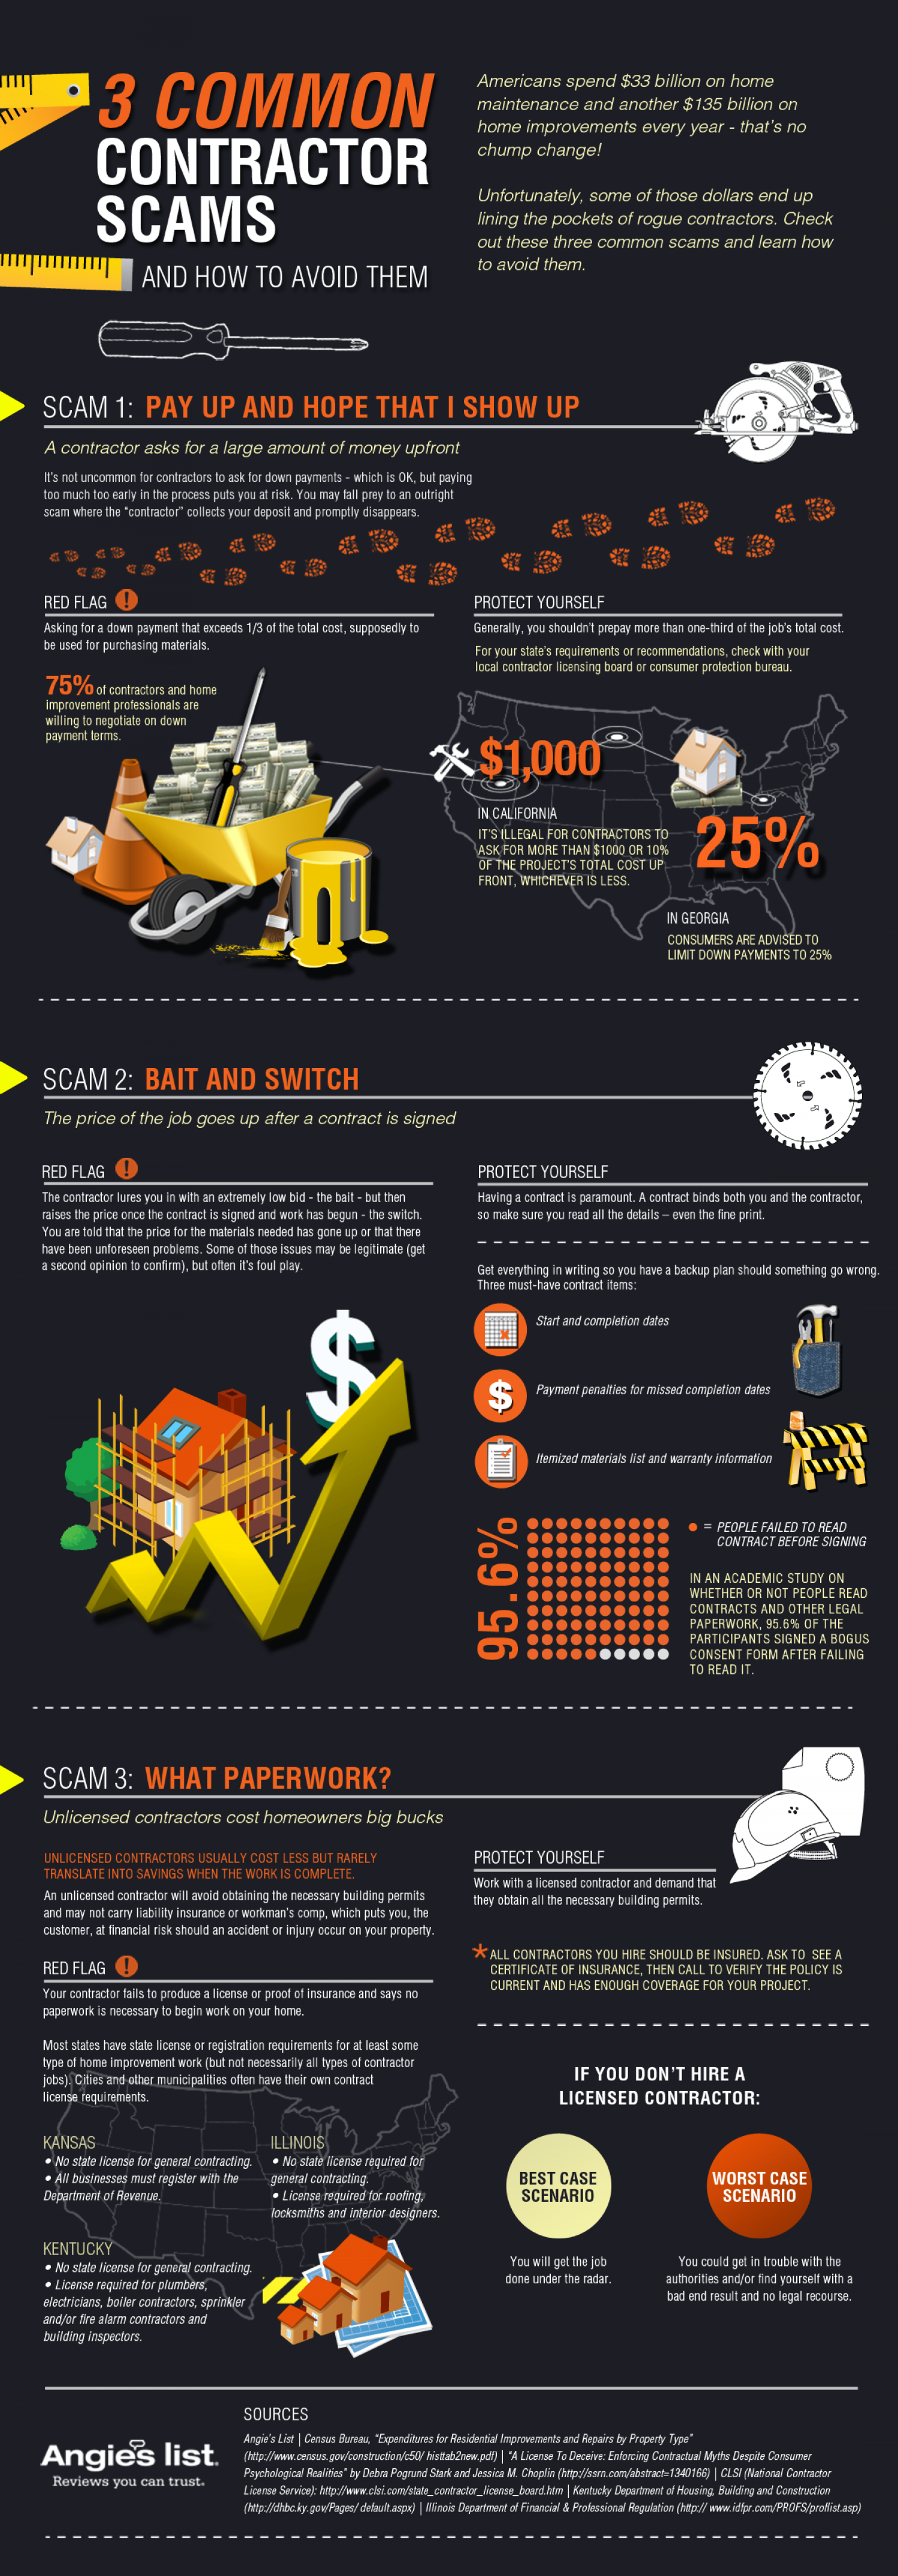 3 Common Contractor Scams Infographic